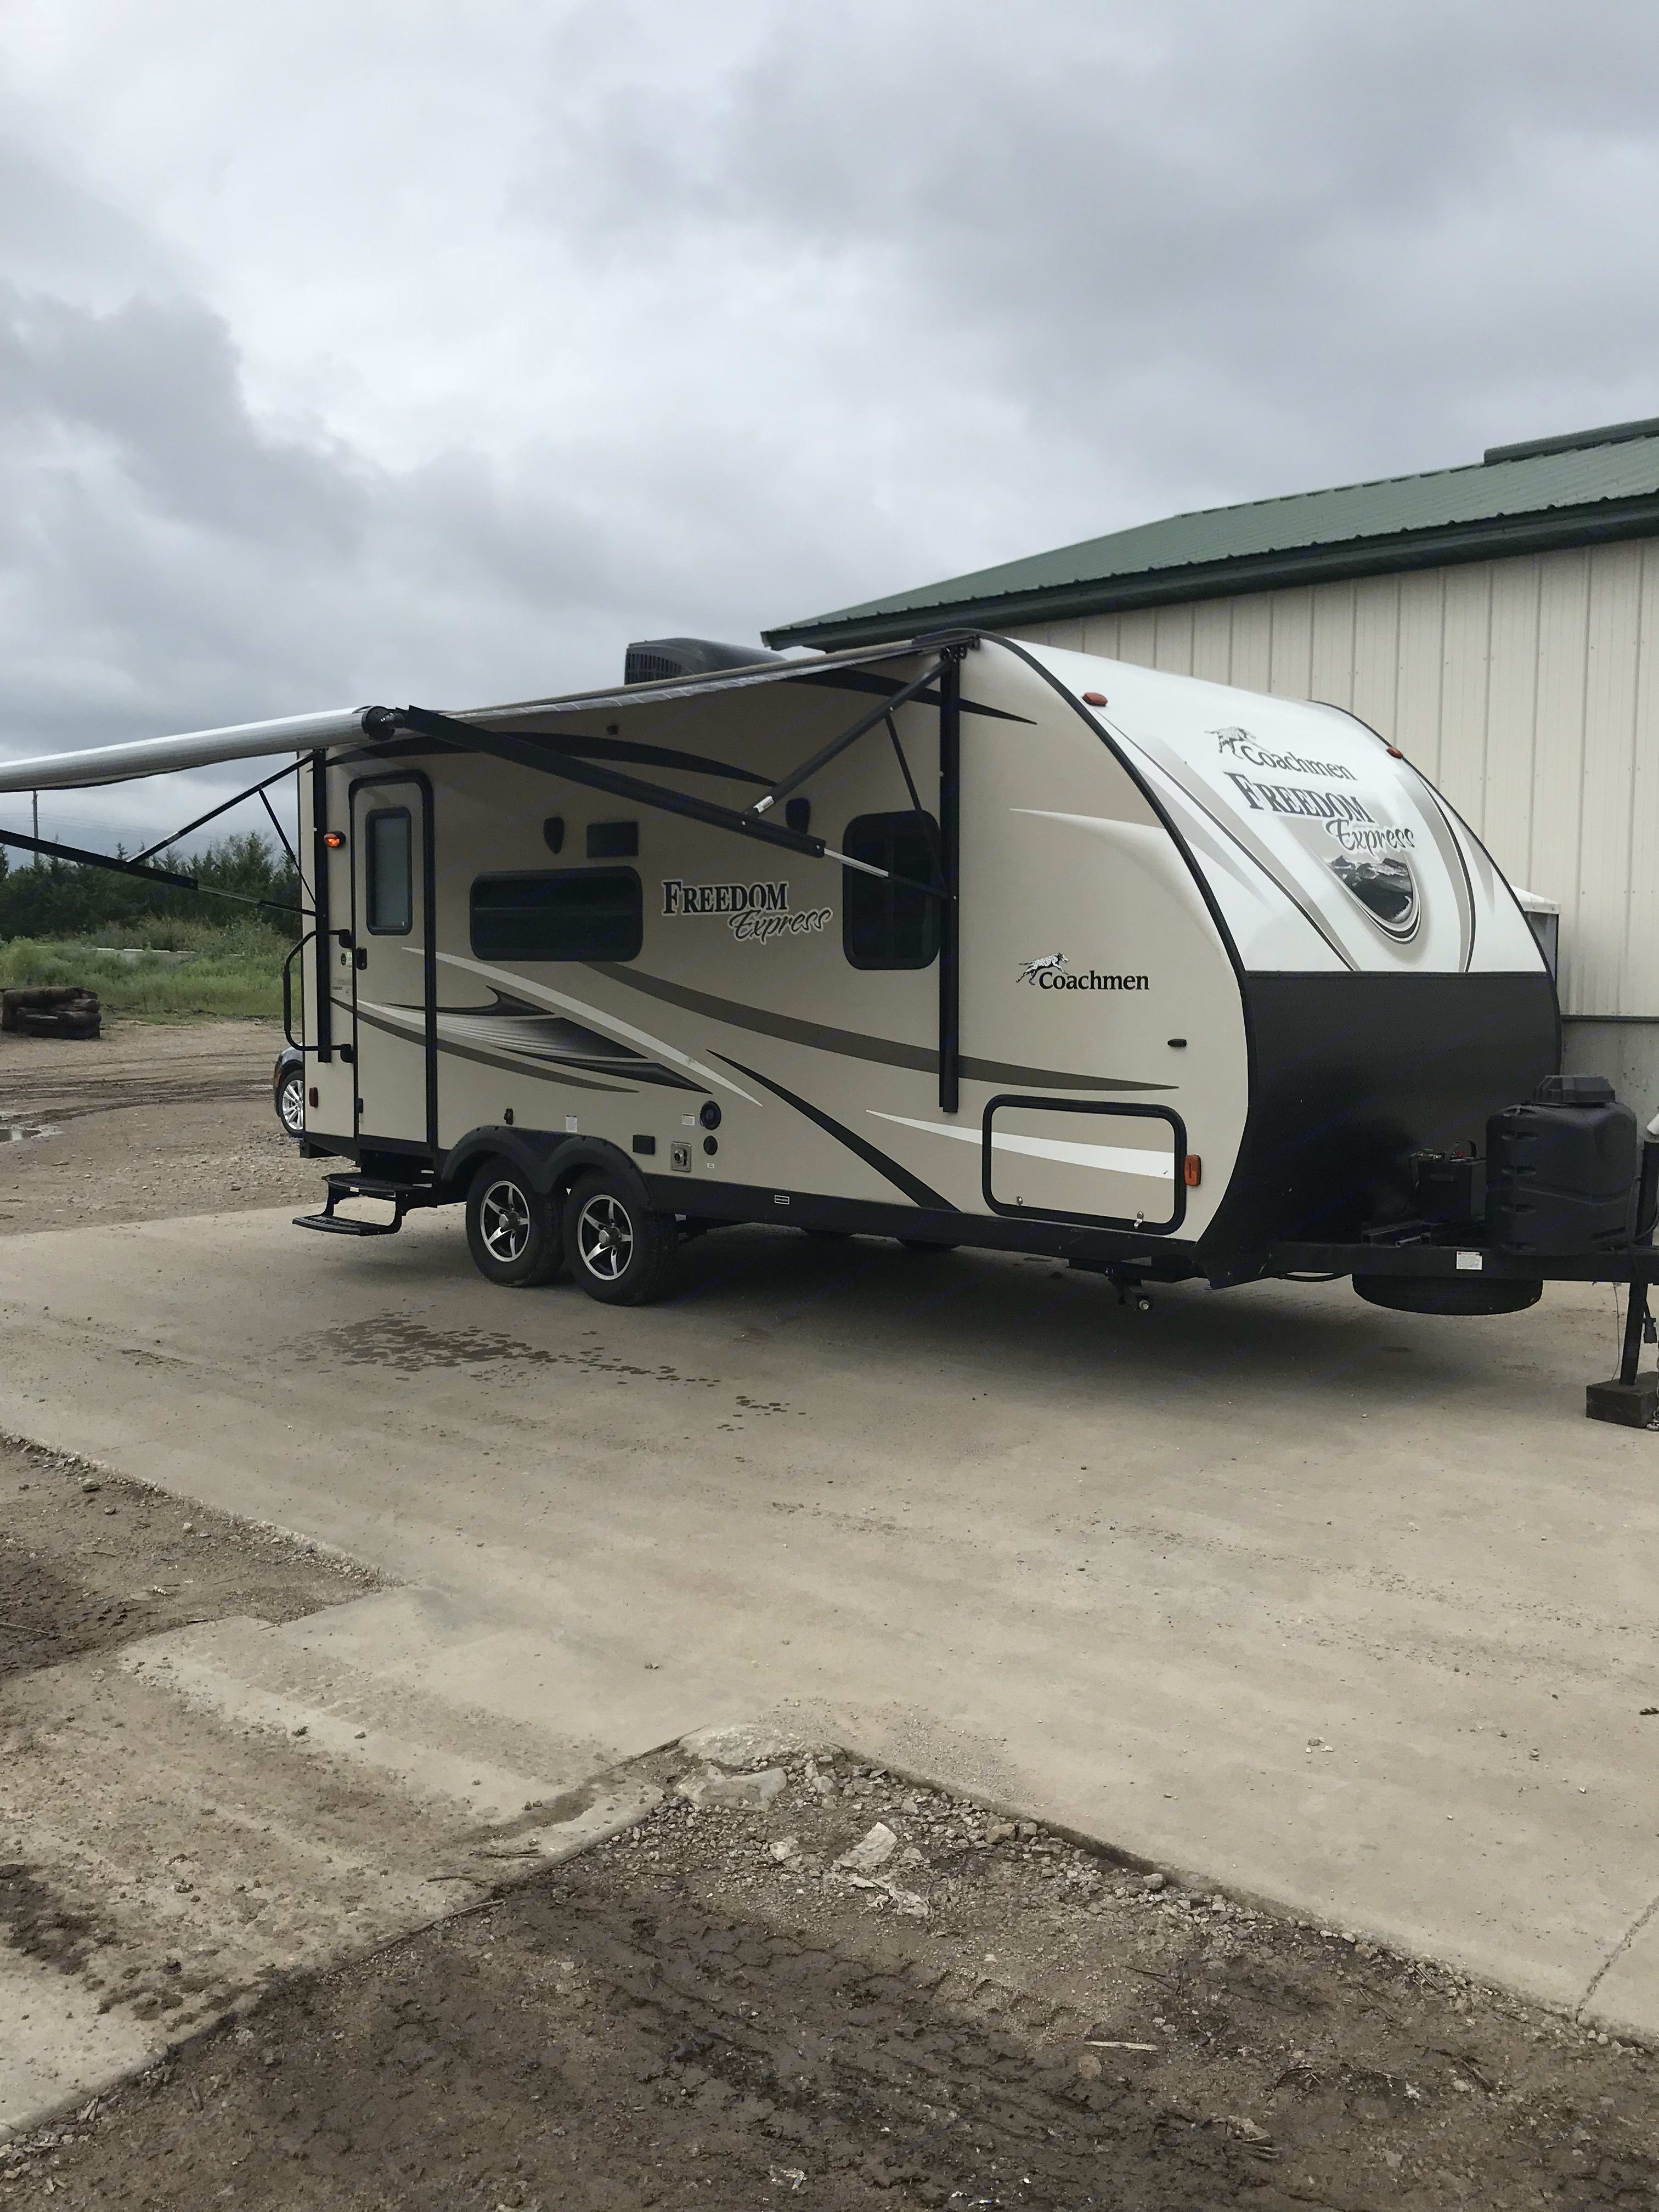 Outside view with awning extrended.. Coachmen 192RBS FREEDOM EXPRESS 2017